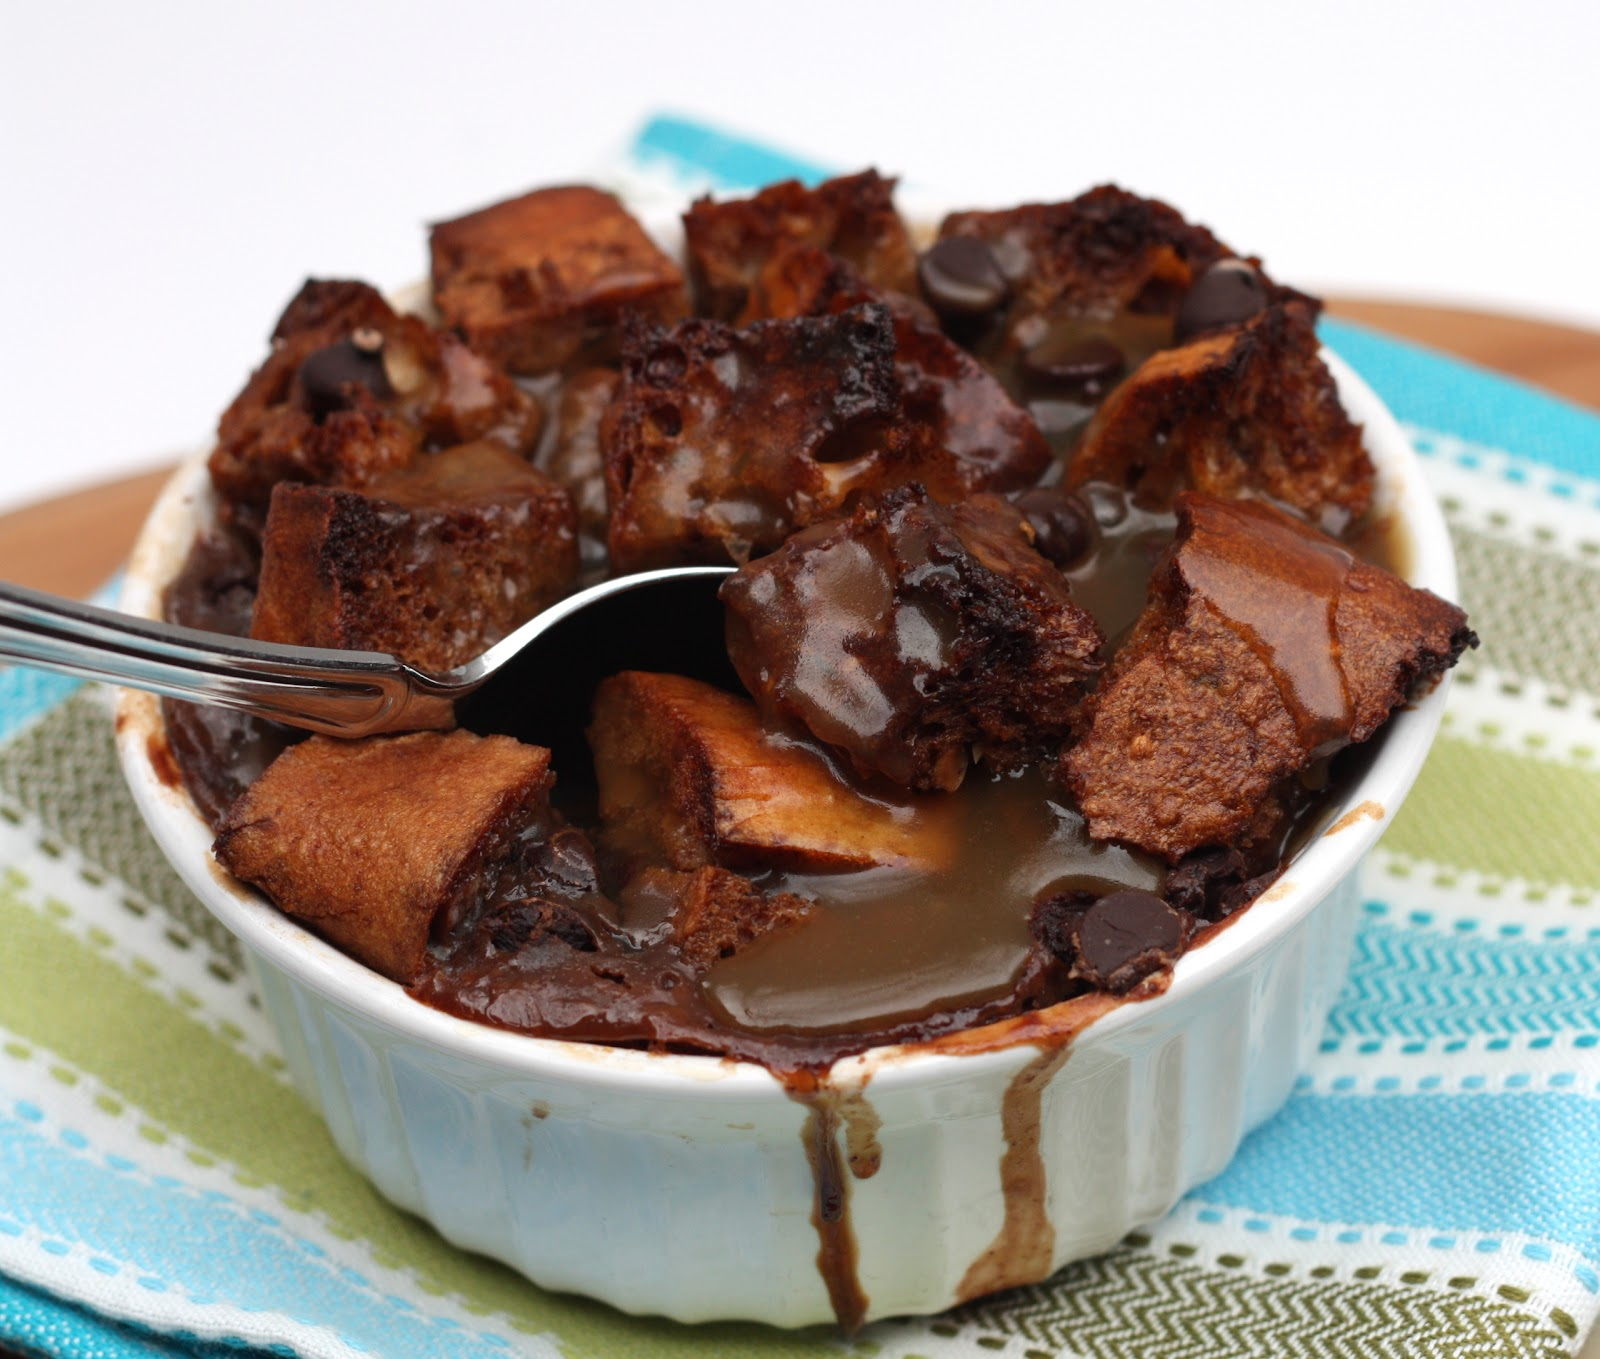 ... and Rhubarb: Chocolate Bread Pudding with Bourbon Butterscotch Sauce